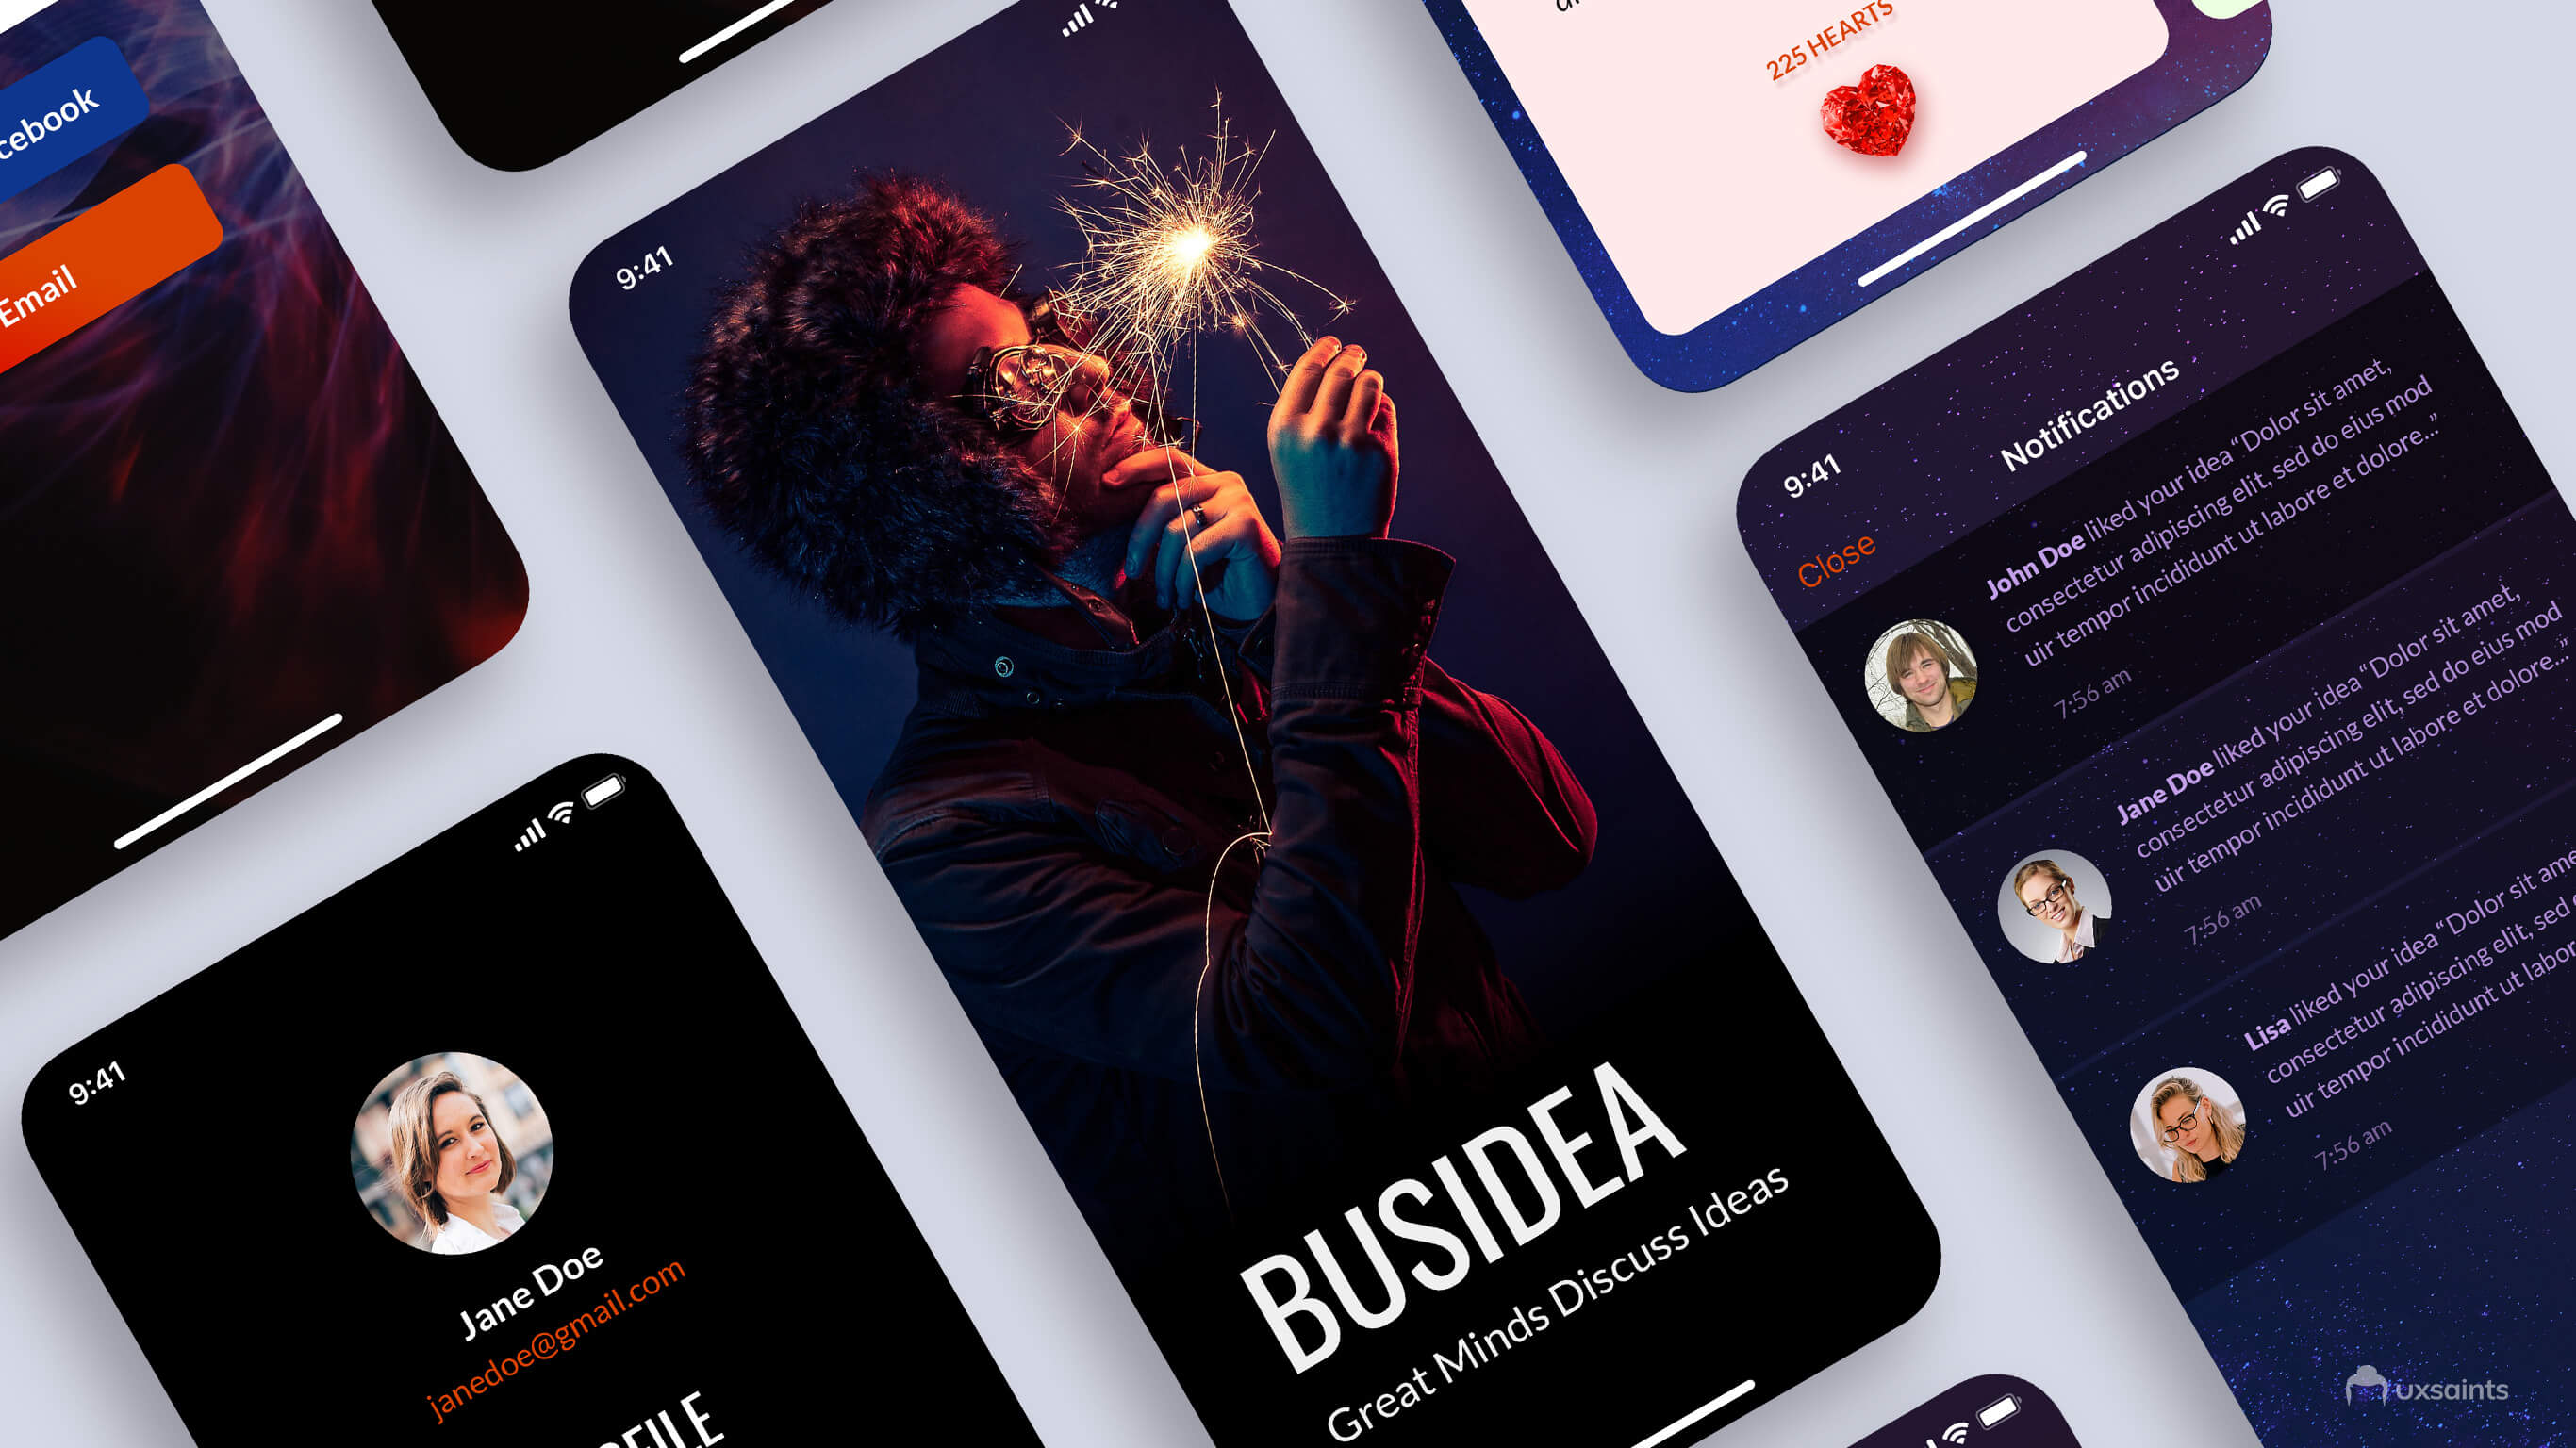 iPhoneX app design